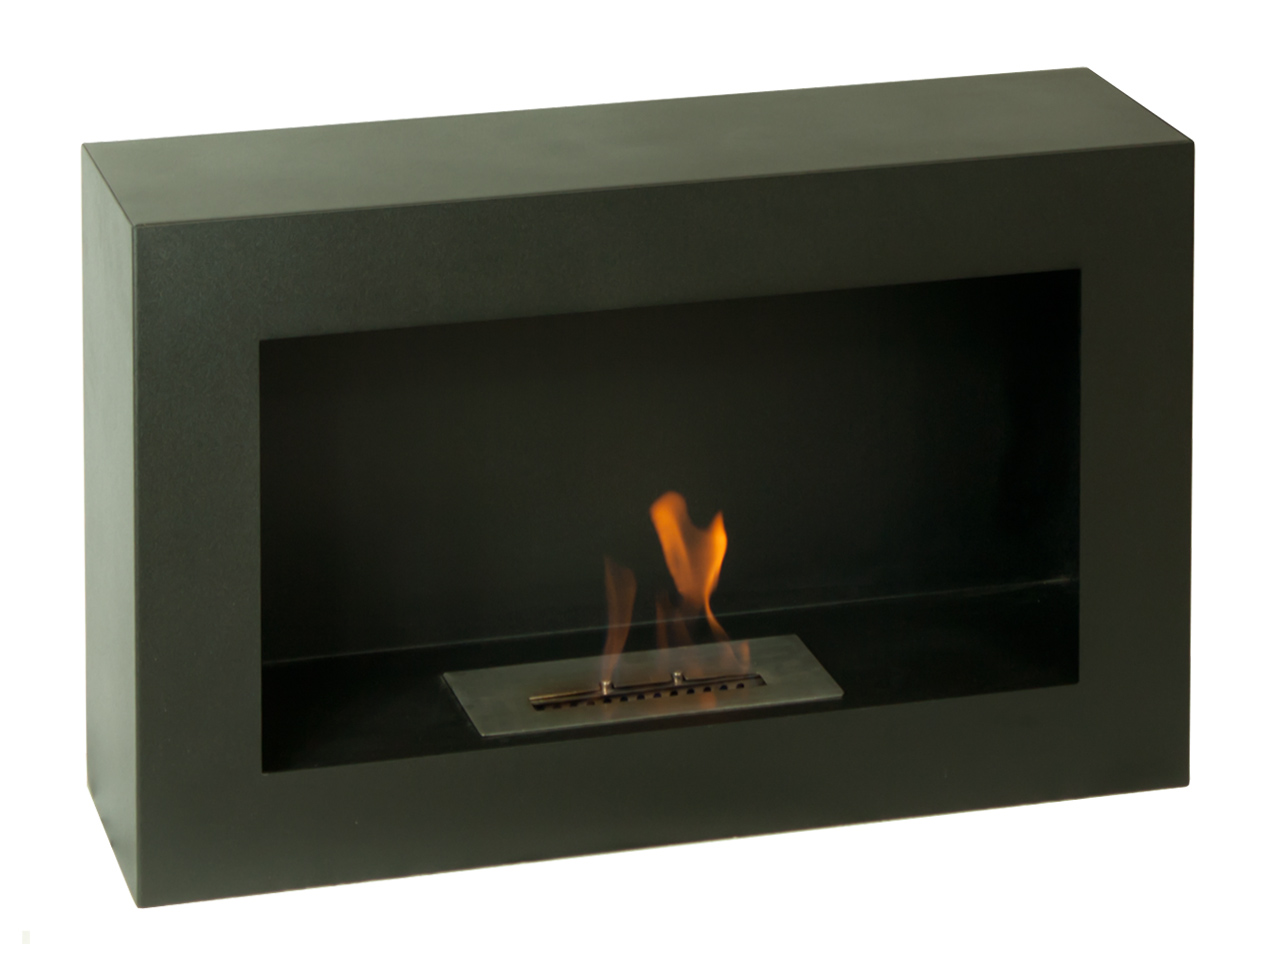 31 4 Quot Ignis Spectrum Freestanding Ventless Ethanol Fireplace